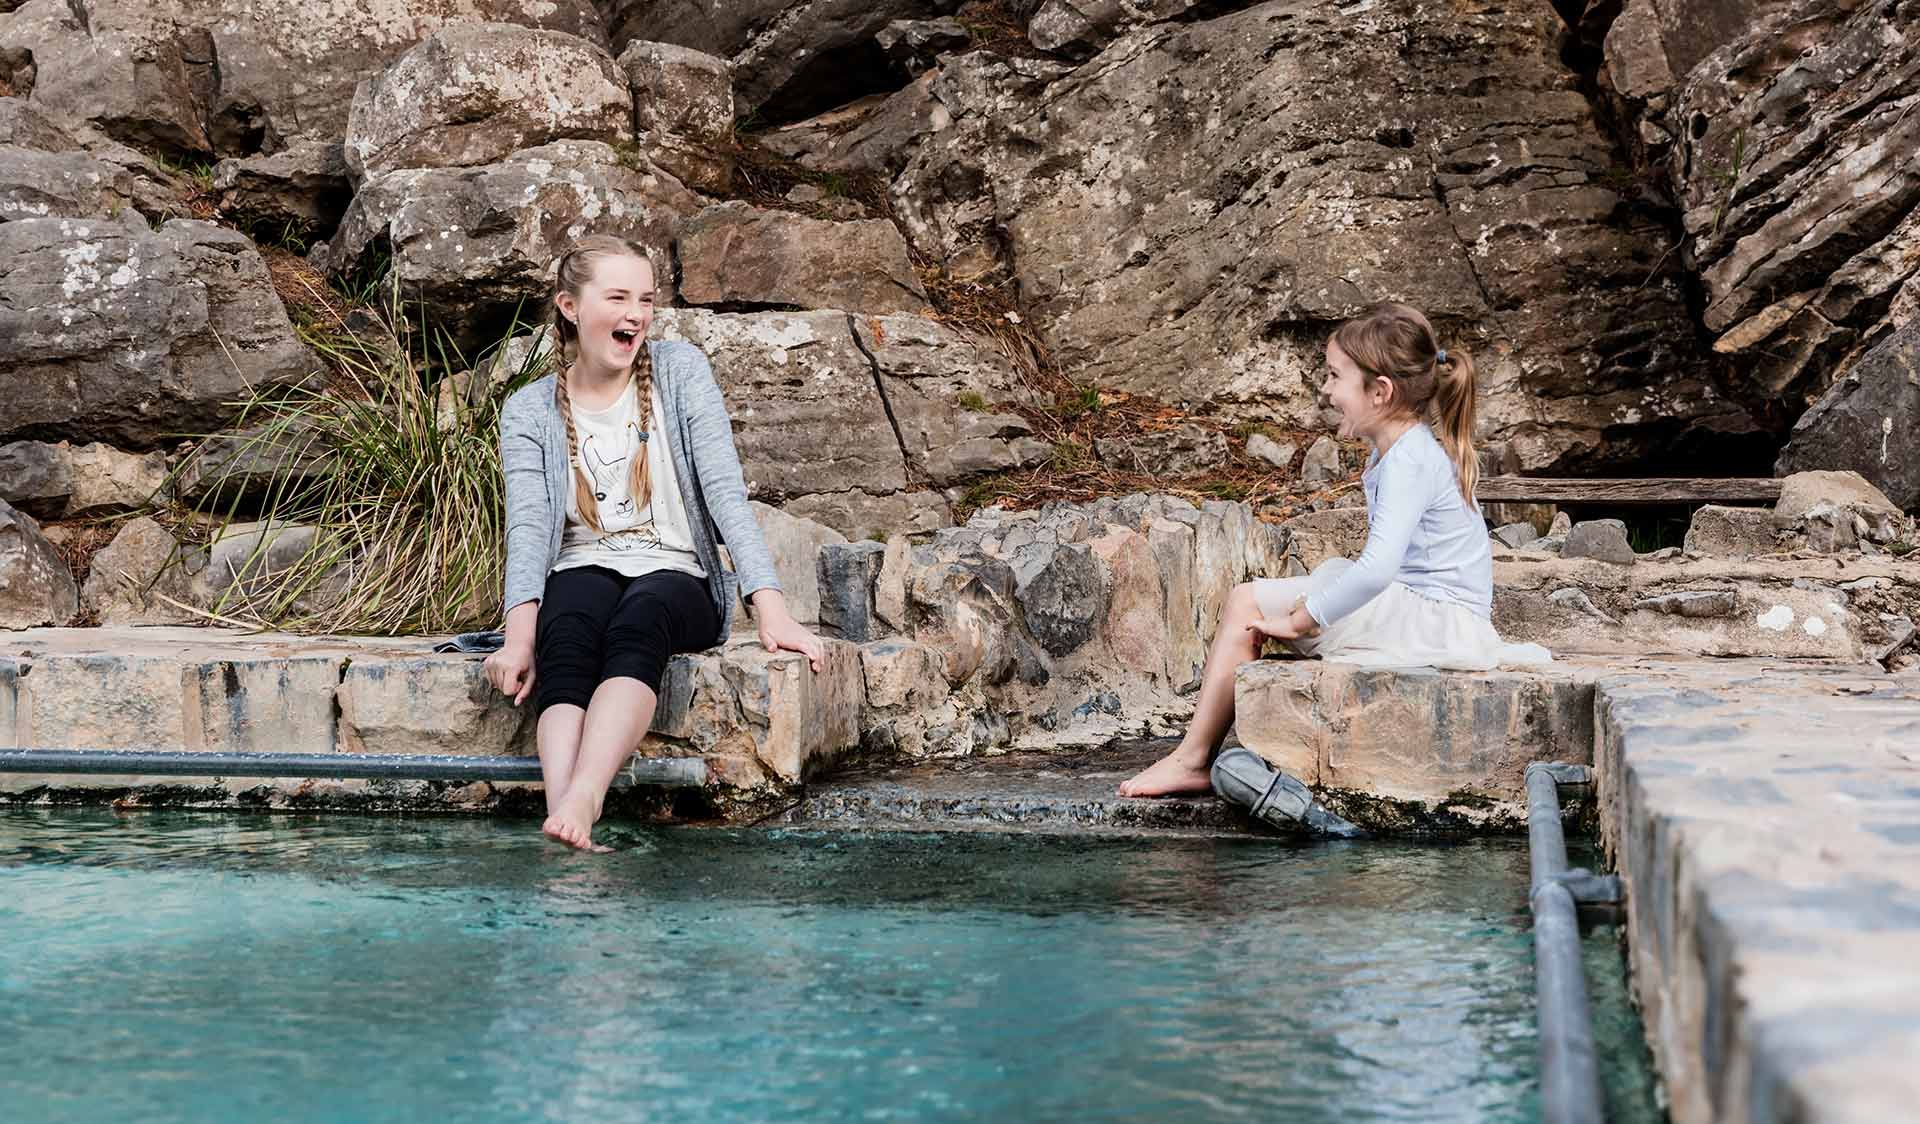 Two young girls sit on the edge of the natural spring swimming pool at Buchan Caves and dangle their feet into the water.